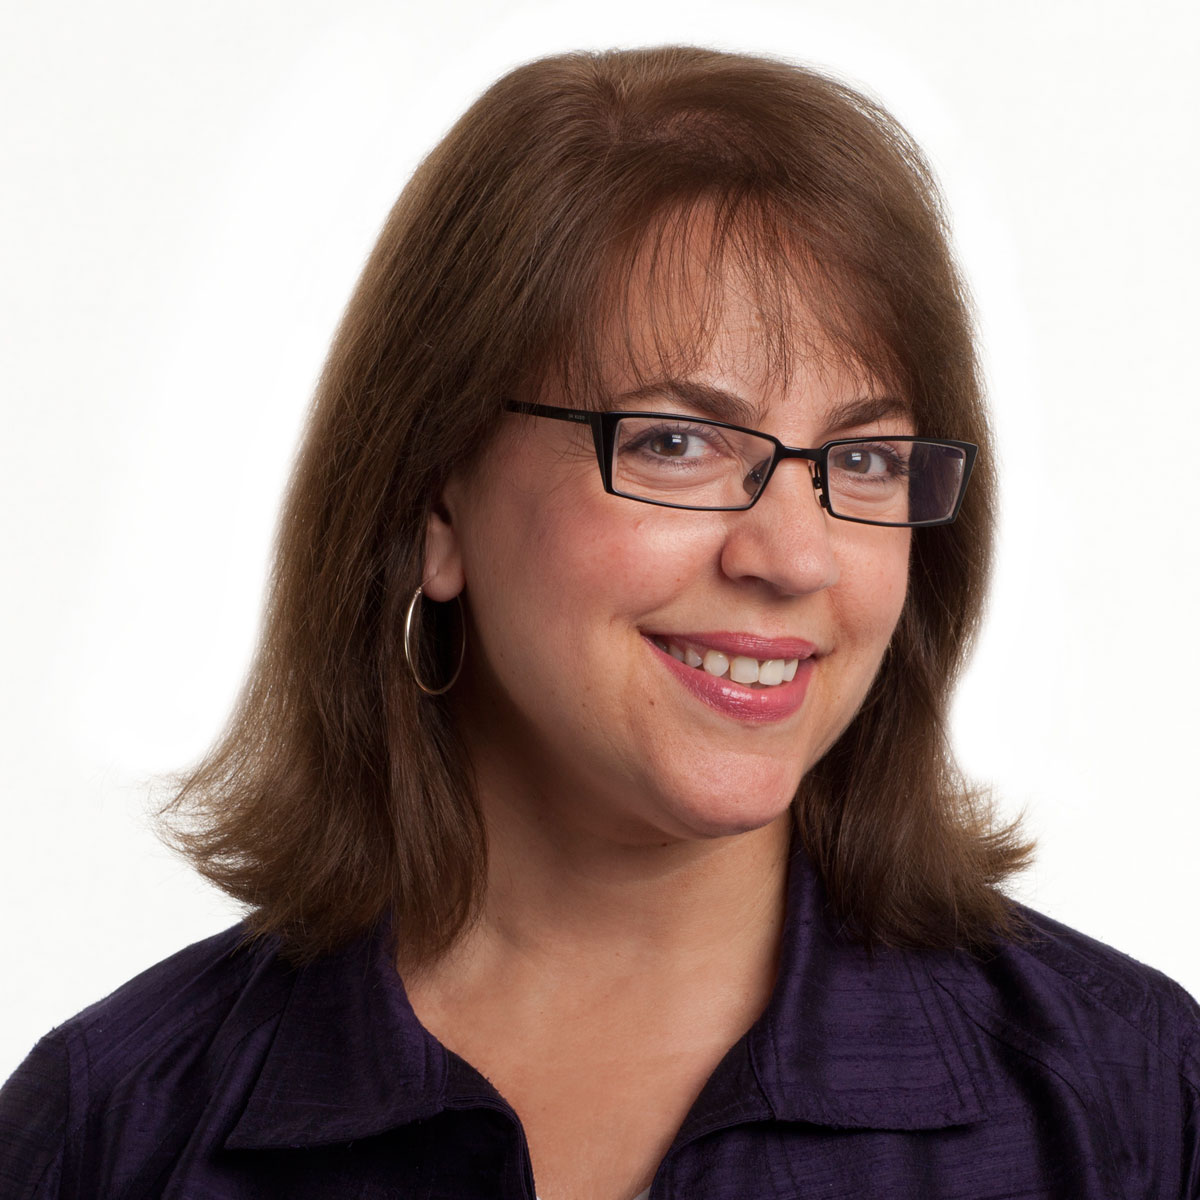 Suzanne Napier, Vice President and Science + Technology Studio Leader at SmithGroupJJR